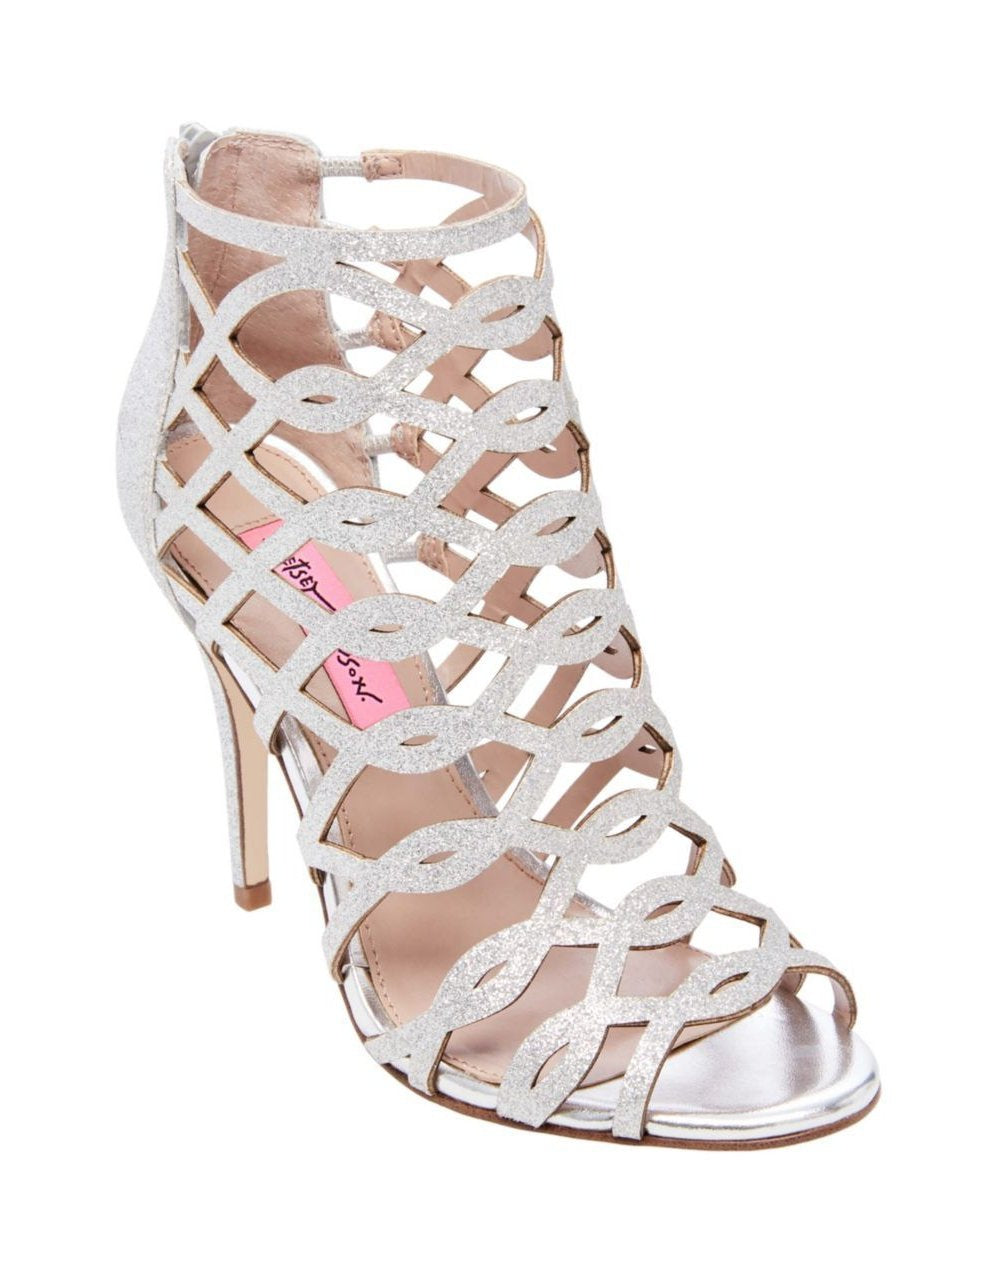 JUDETH SILVER - SHOES - Betsey Johnson